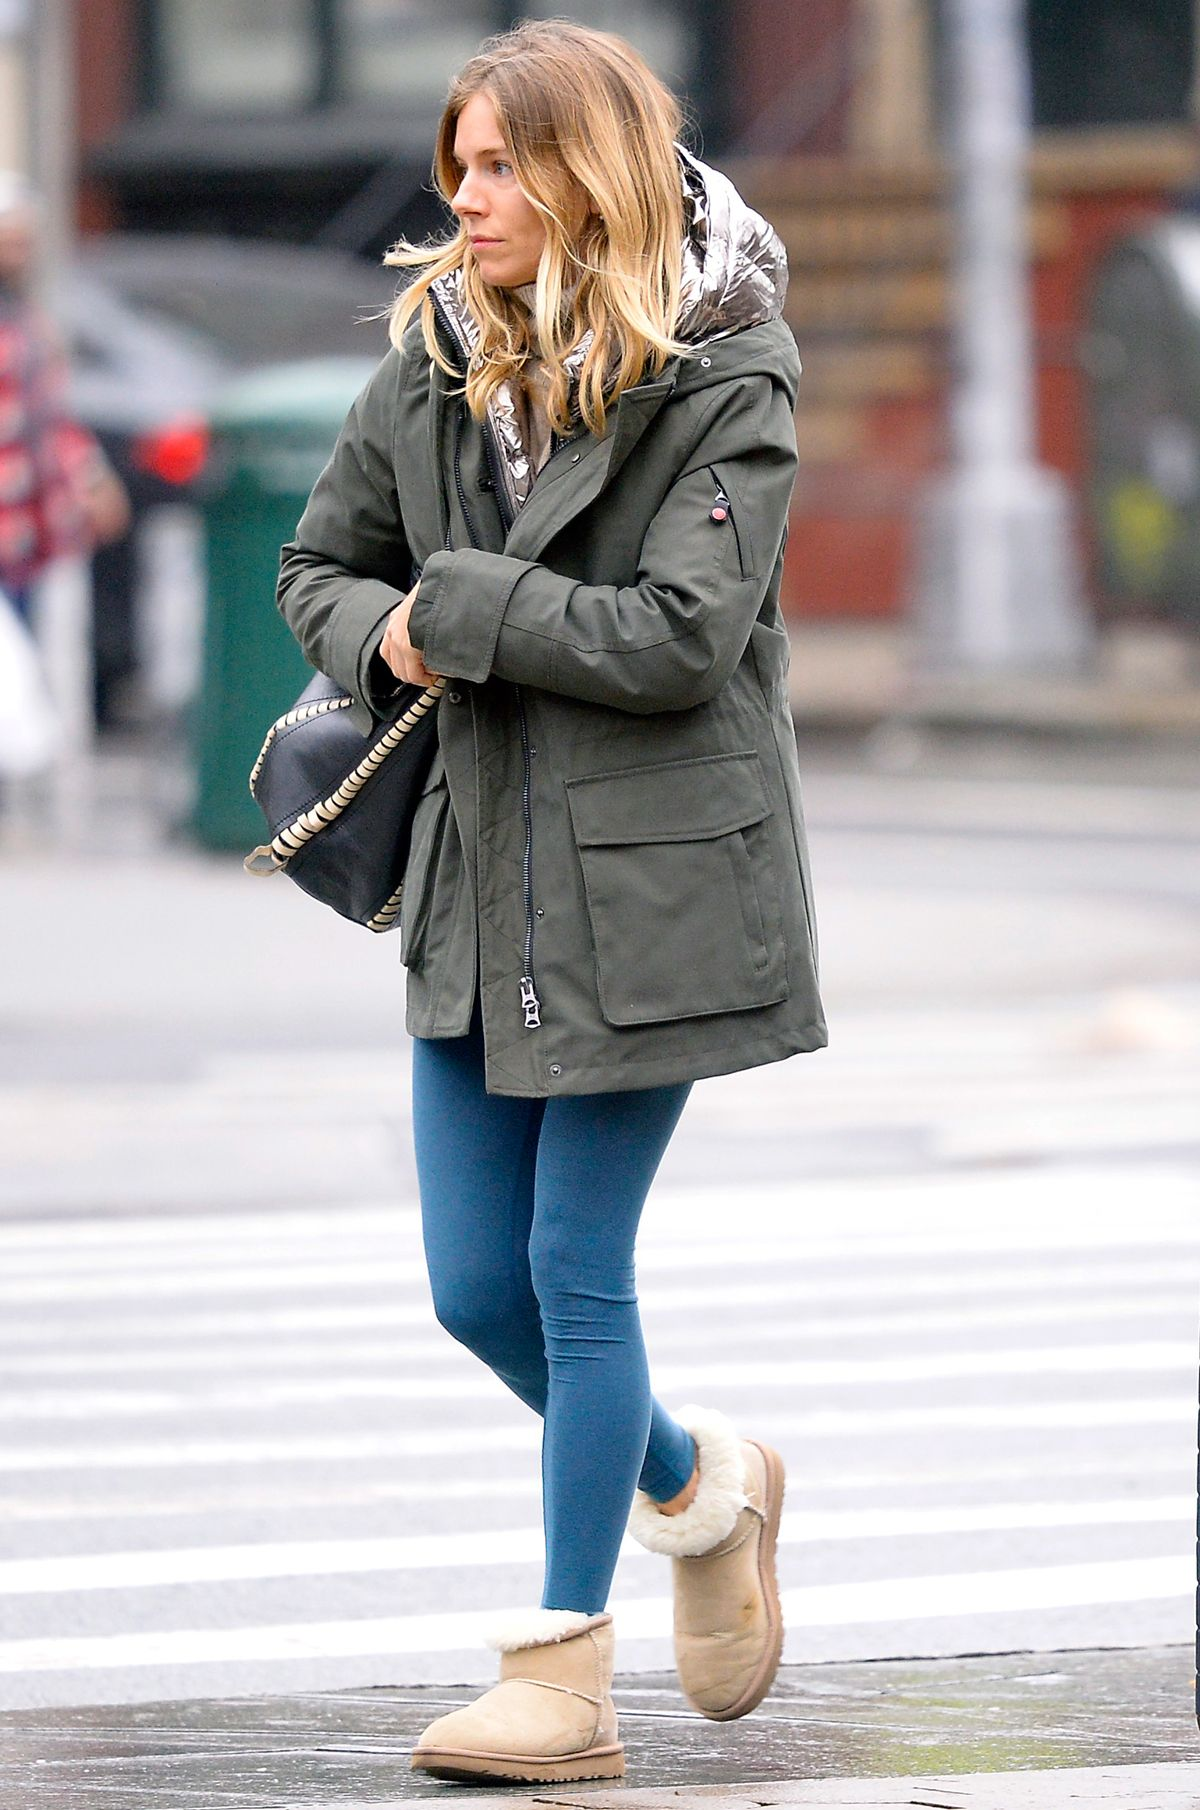 3c75e7ddfbf4b The Sienna Miller Way to Style Ugg Boots With Leggings | WhoWhatWear.com |  Bloglovin'